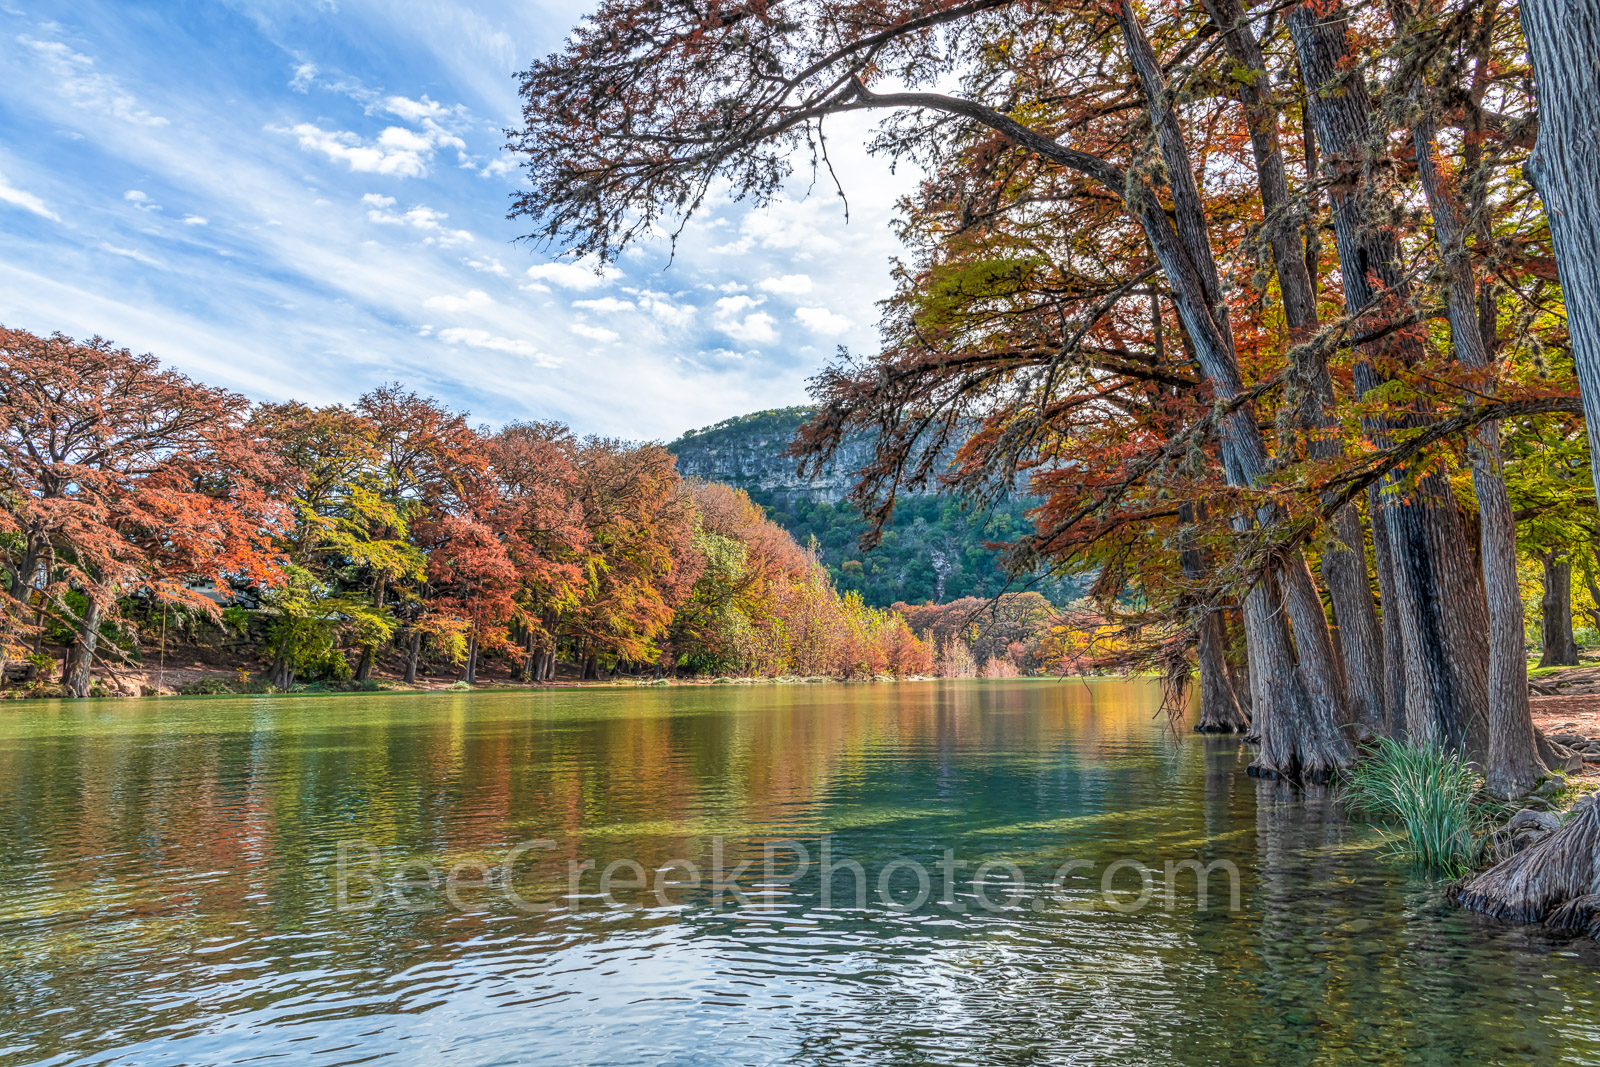 Garner State Park, Frio river, autumn, foliage, Texas landscape, texas hill country, fall, fall colors, Old Baldy, canvas, prints, Texas, landscape,  fall landscape, texas fall landscape, , photo